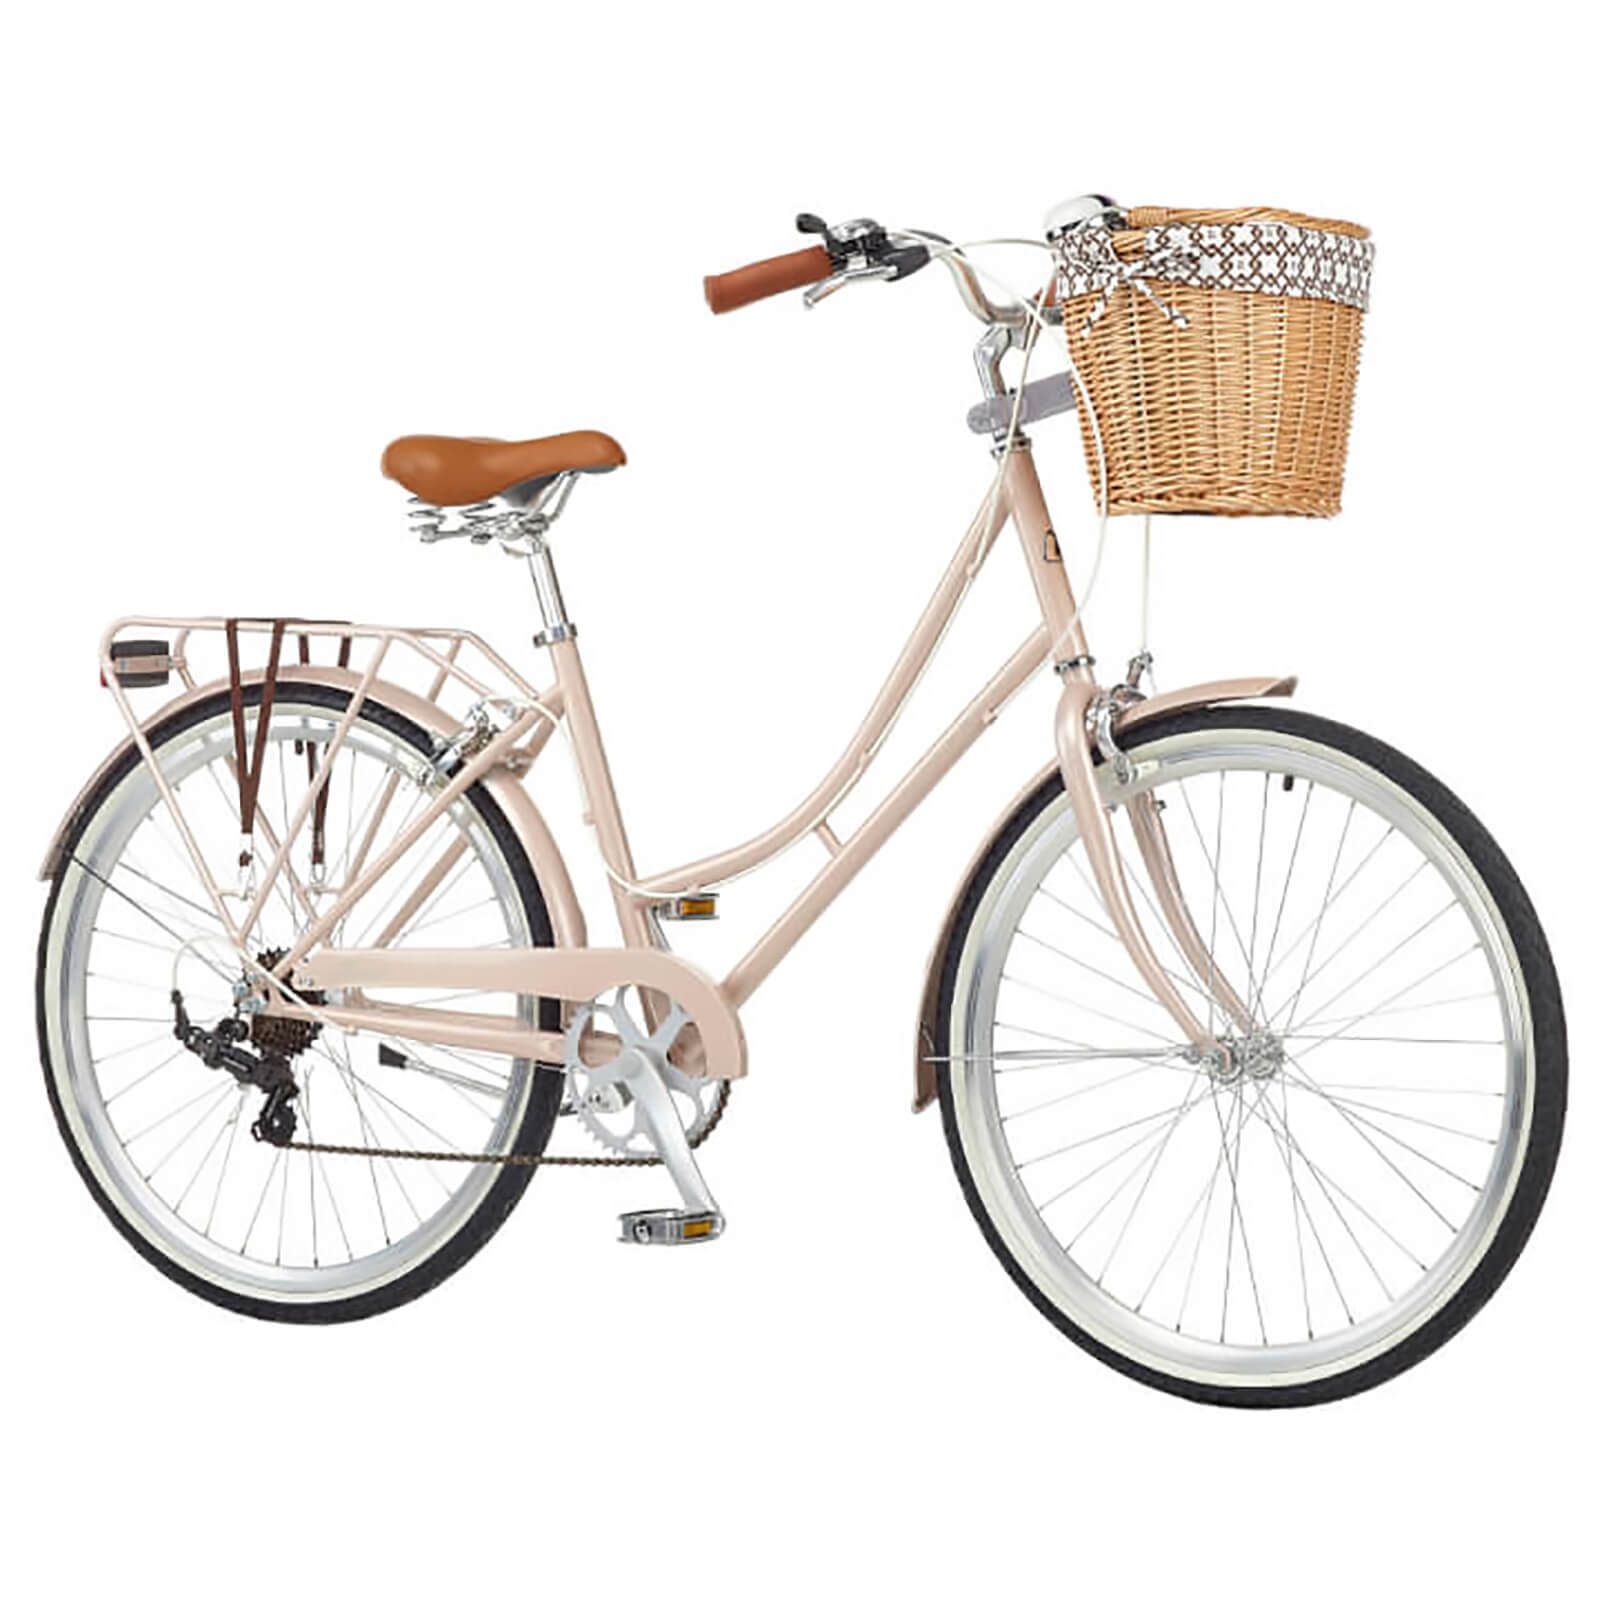 Ryedale Hermione Rose Gold 26 Wheel Women S Bike Womens Bike Bicycle Bike